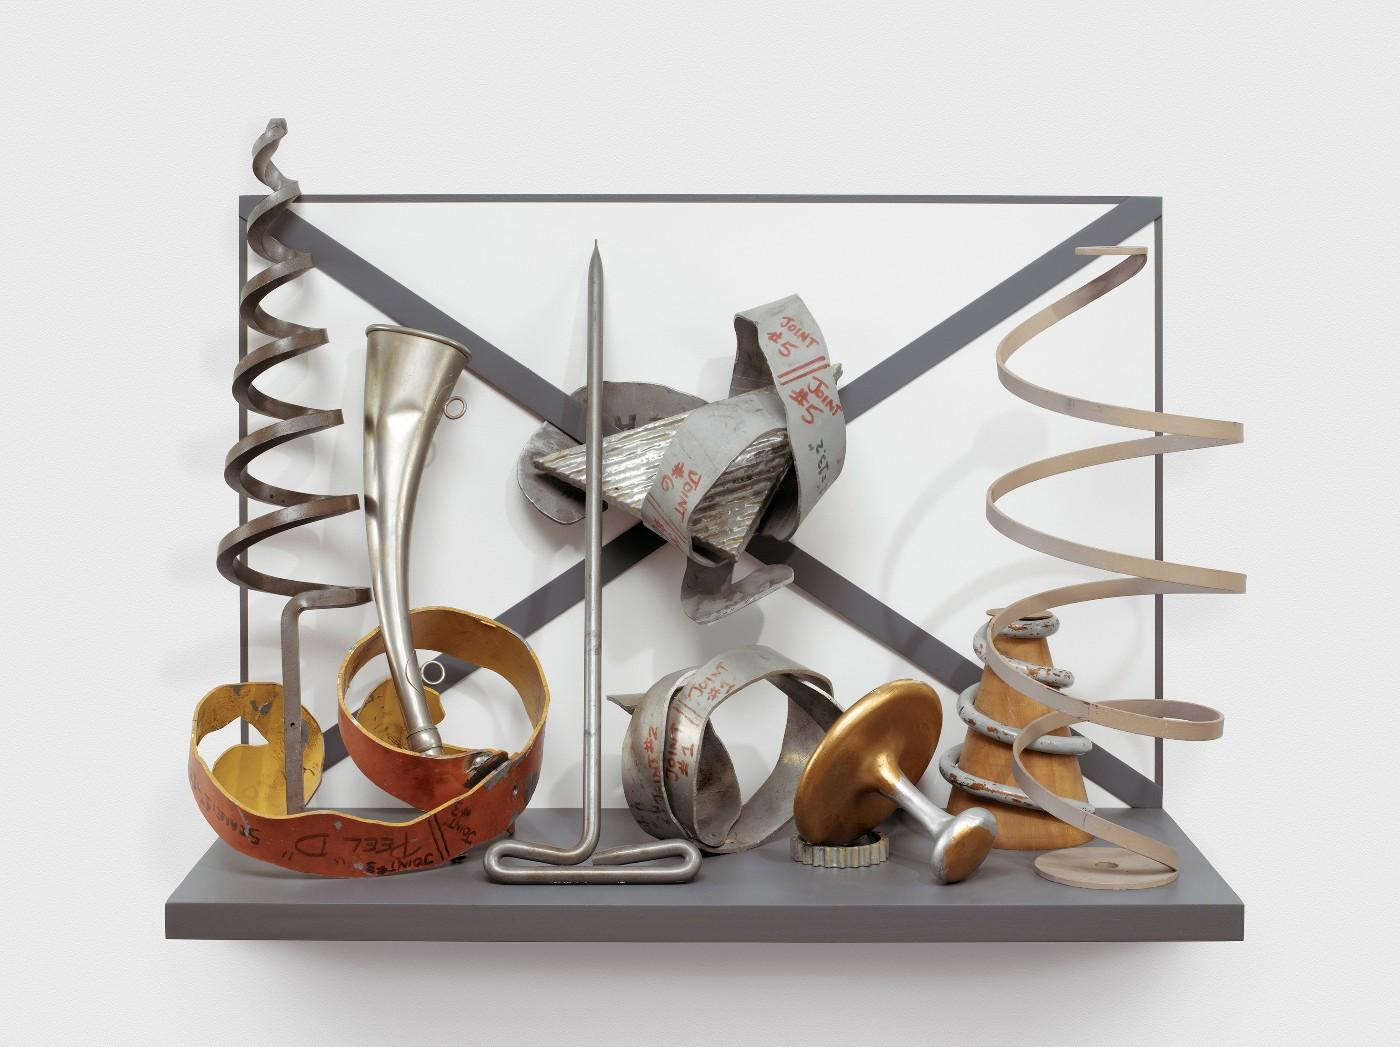 Claes Oldenburg (American (born in Sweden, 1929)), Shelf Life Number 15, 2016-2017